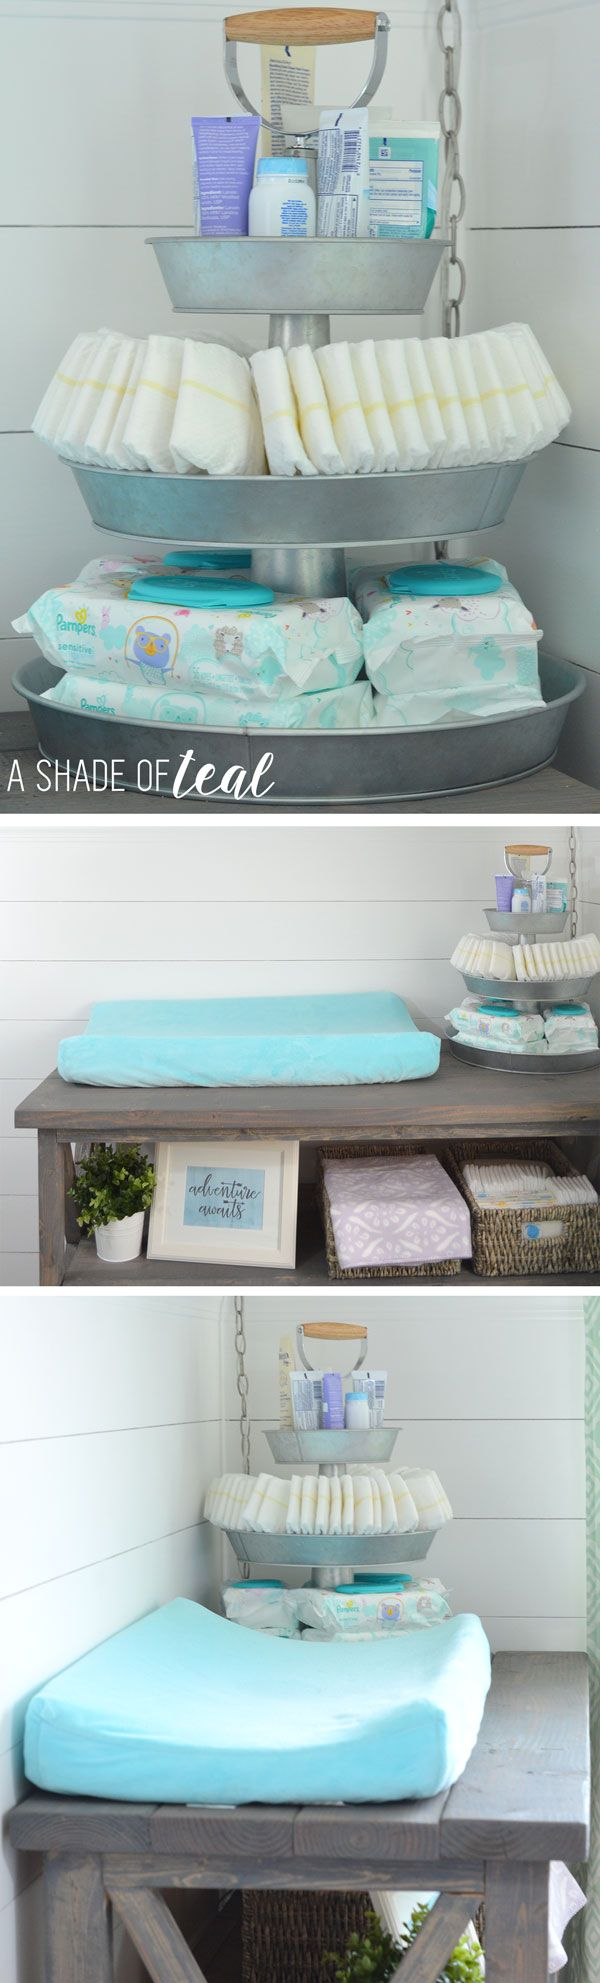 Mesa rústica para mudar bebés <3  Rustic Glam Nursery {One Room Challenge}, The Reveal | A Shade Of Teal